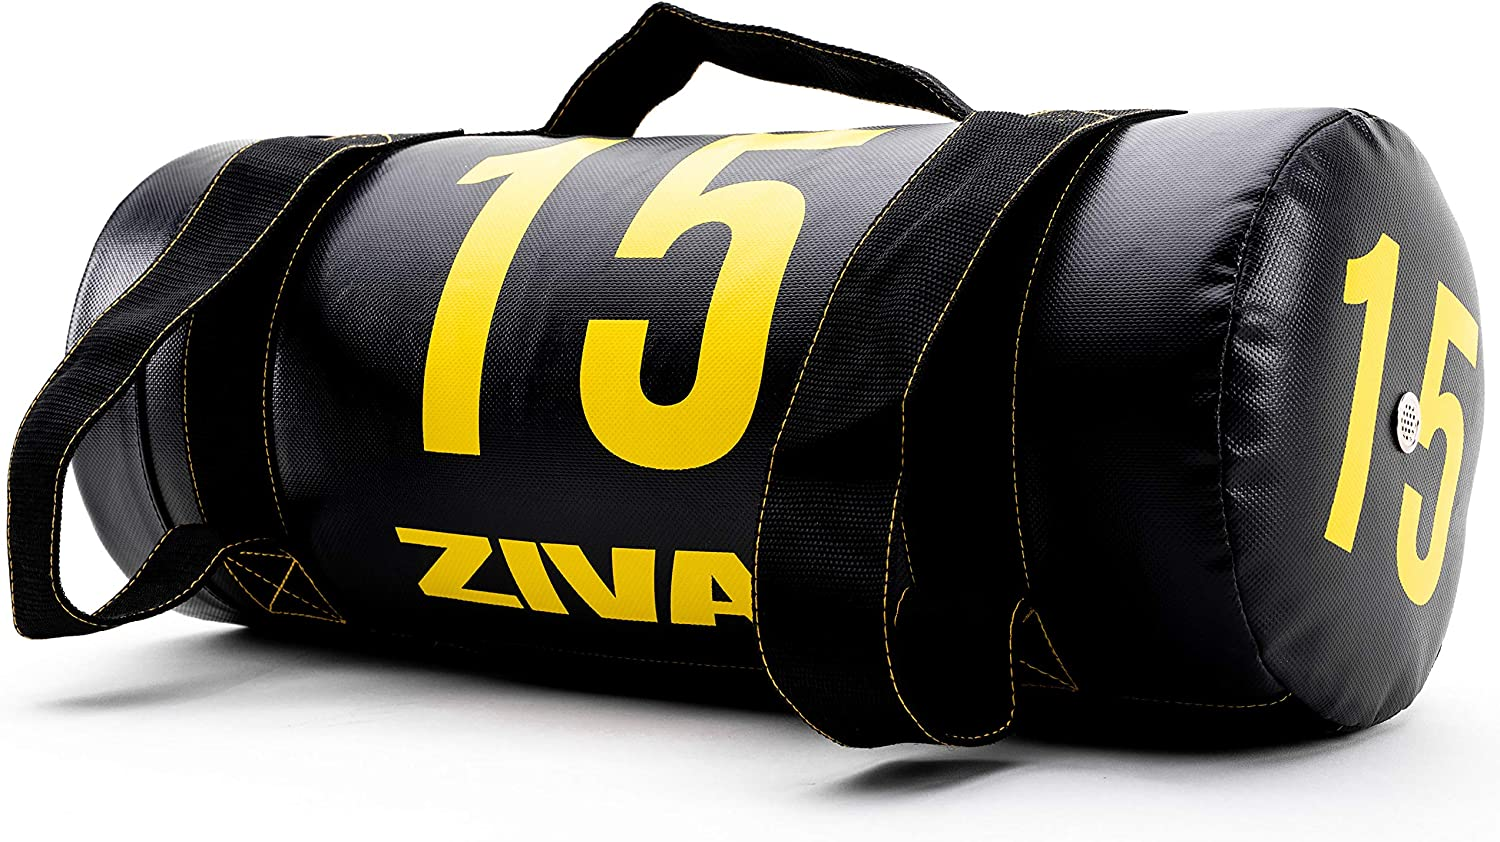 Crossfit powers Workout Sandbags Filled Weight Sand Bag,Heavy Duty Sandbags For Training Sand Not Included Durable Kevlar Military Grade Weigh 5//10//15//20//25//30 Kg Home Gym Equipment